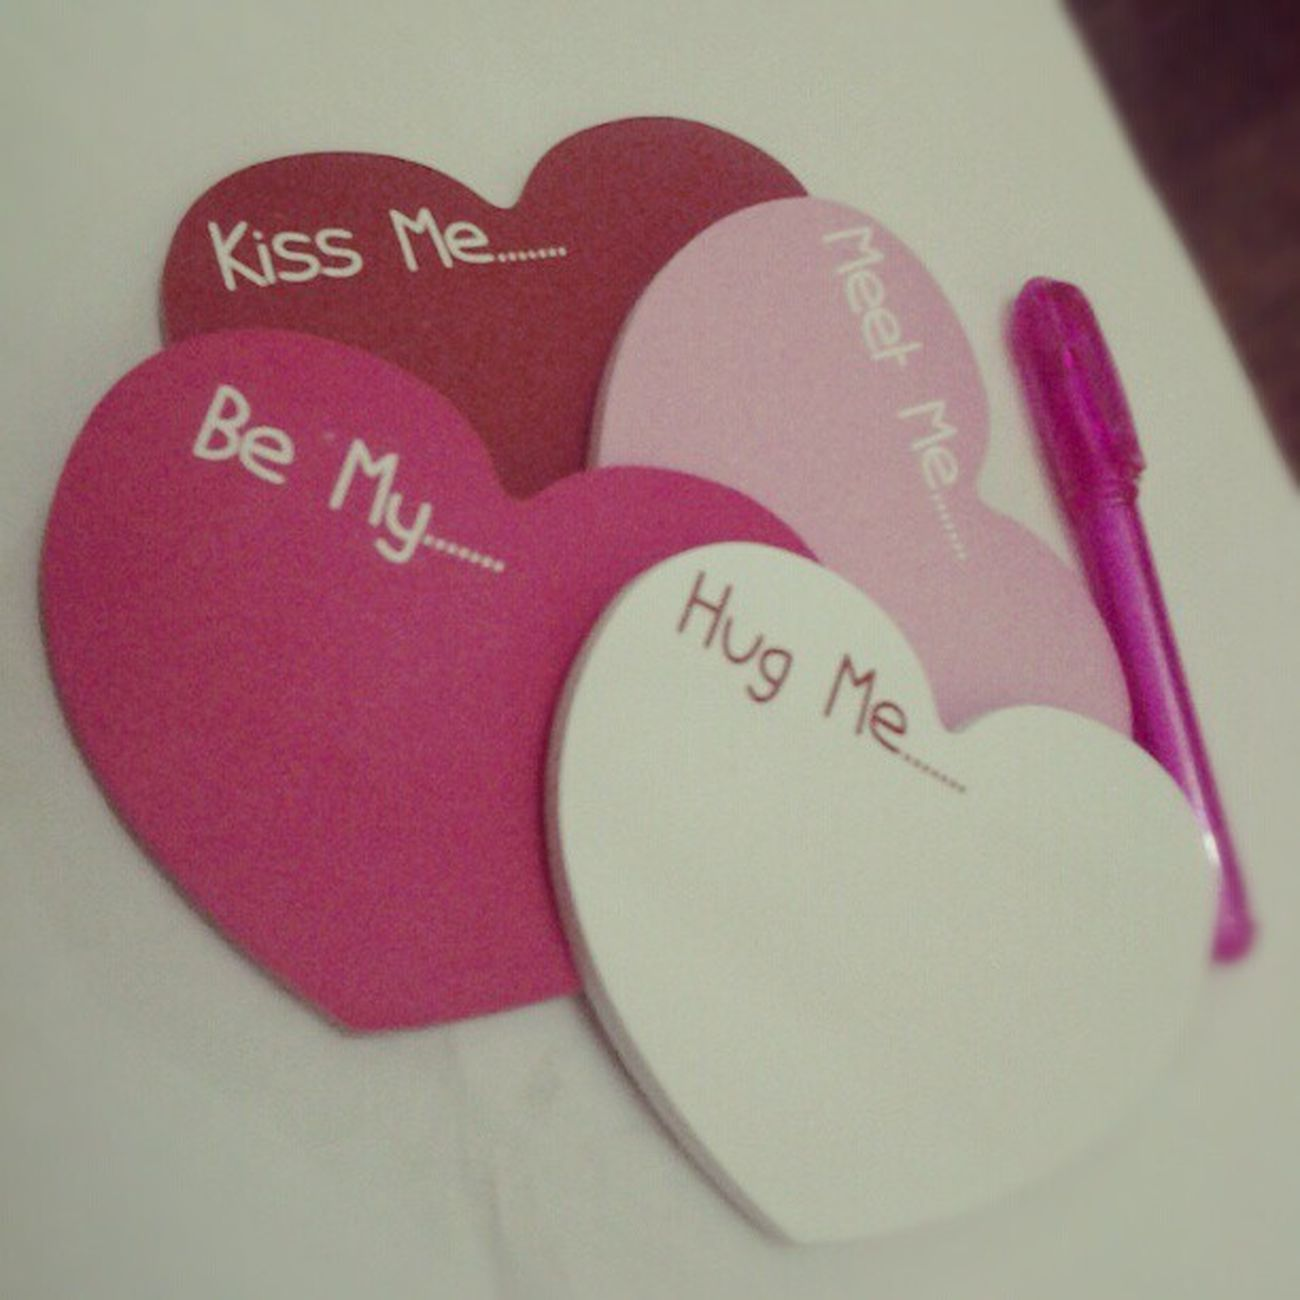 My new ♡ notepads... lovin the colors Babypink Hotpink Red Heart hugs kisses love